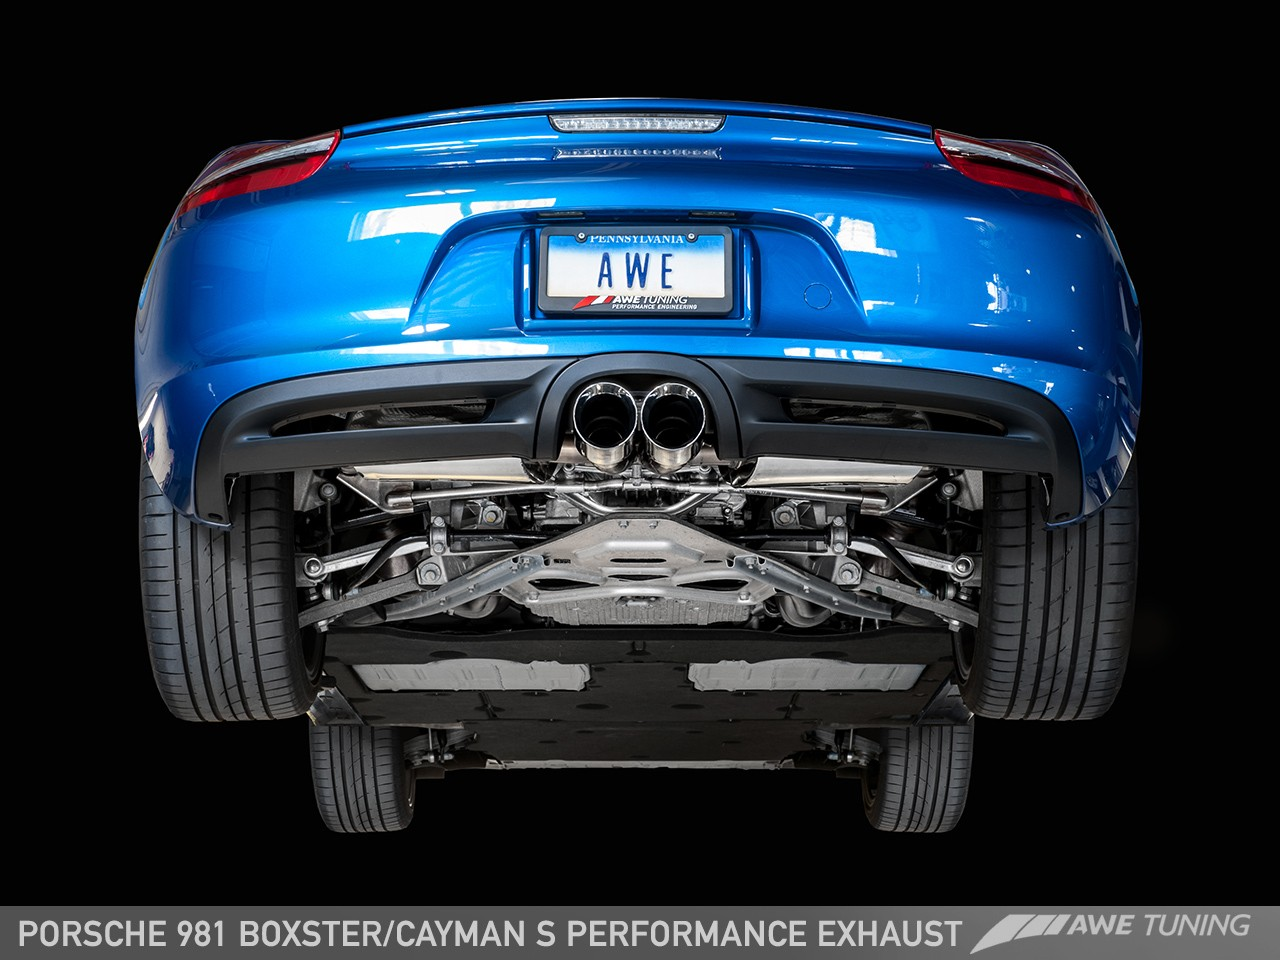 Awe Performance Exhaust For Porsche 981 Boxster S Awe Tuning